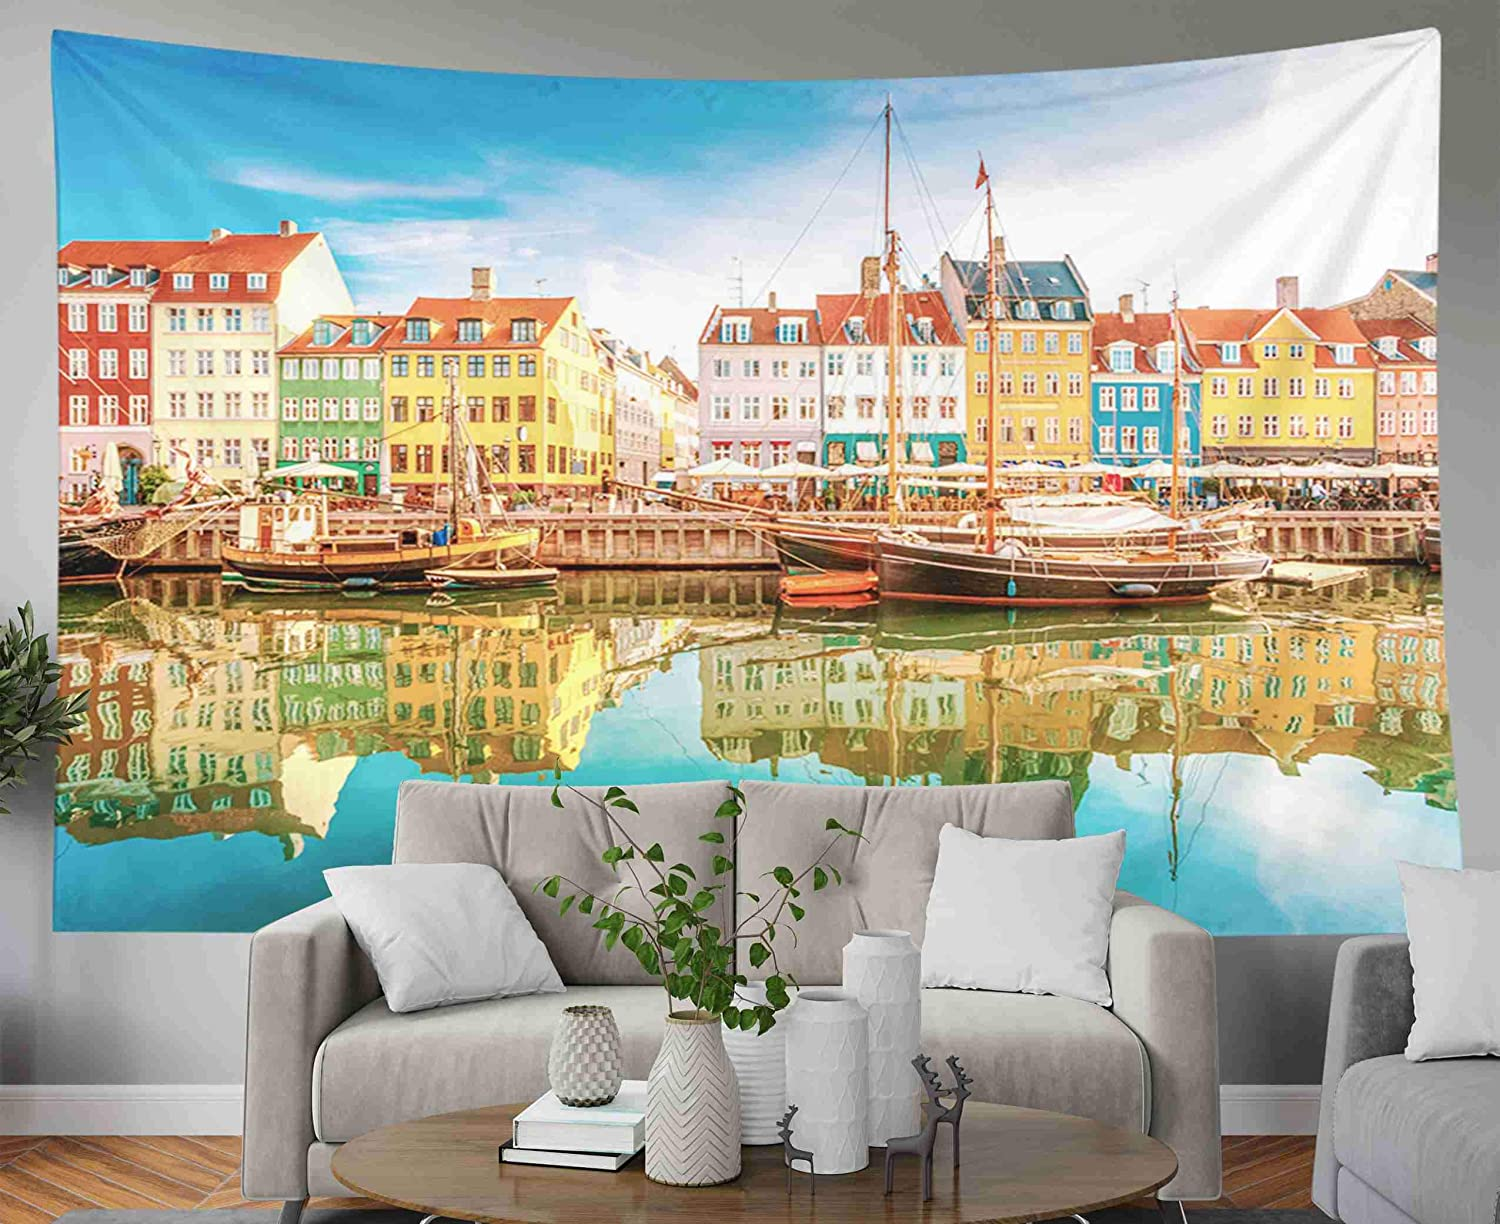 Capsceoll Tapestry for Flag Day, 60x50 Inches Tapestries Kopenhagen Wall Hanging Tapestry for Décor Dorm Tapestry Living Home